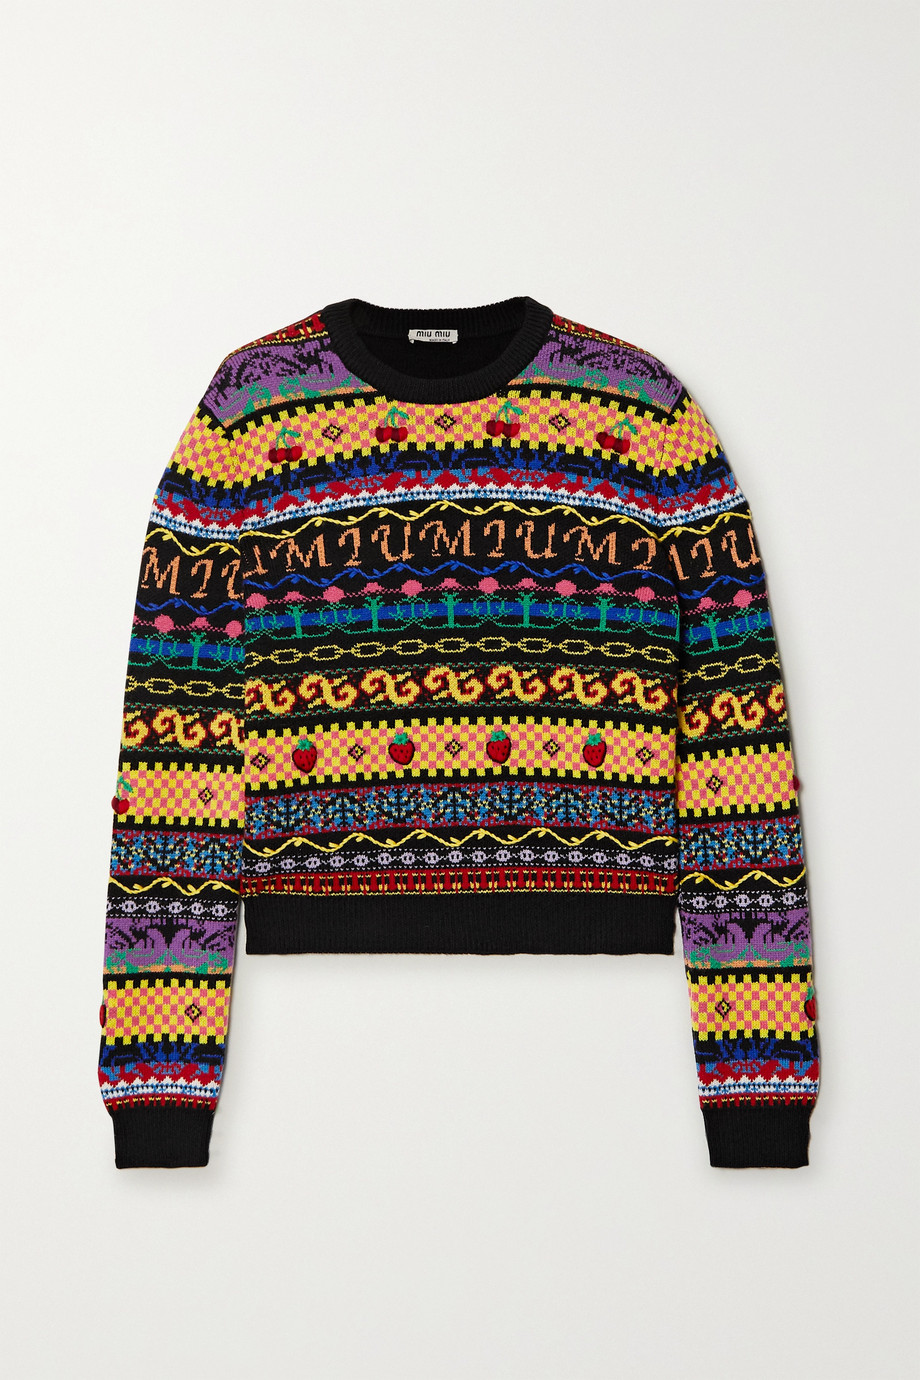 Miu Miu Wool sweater